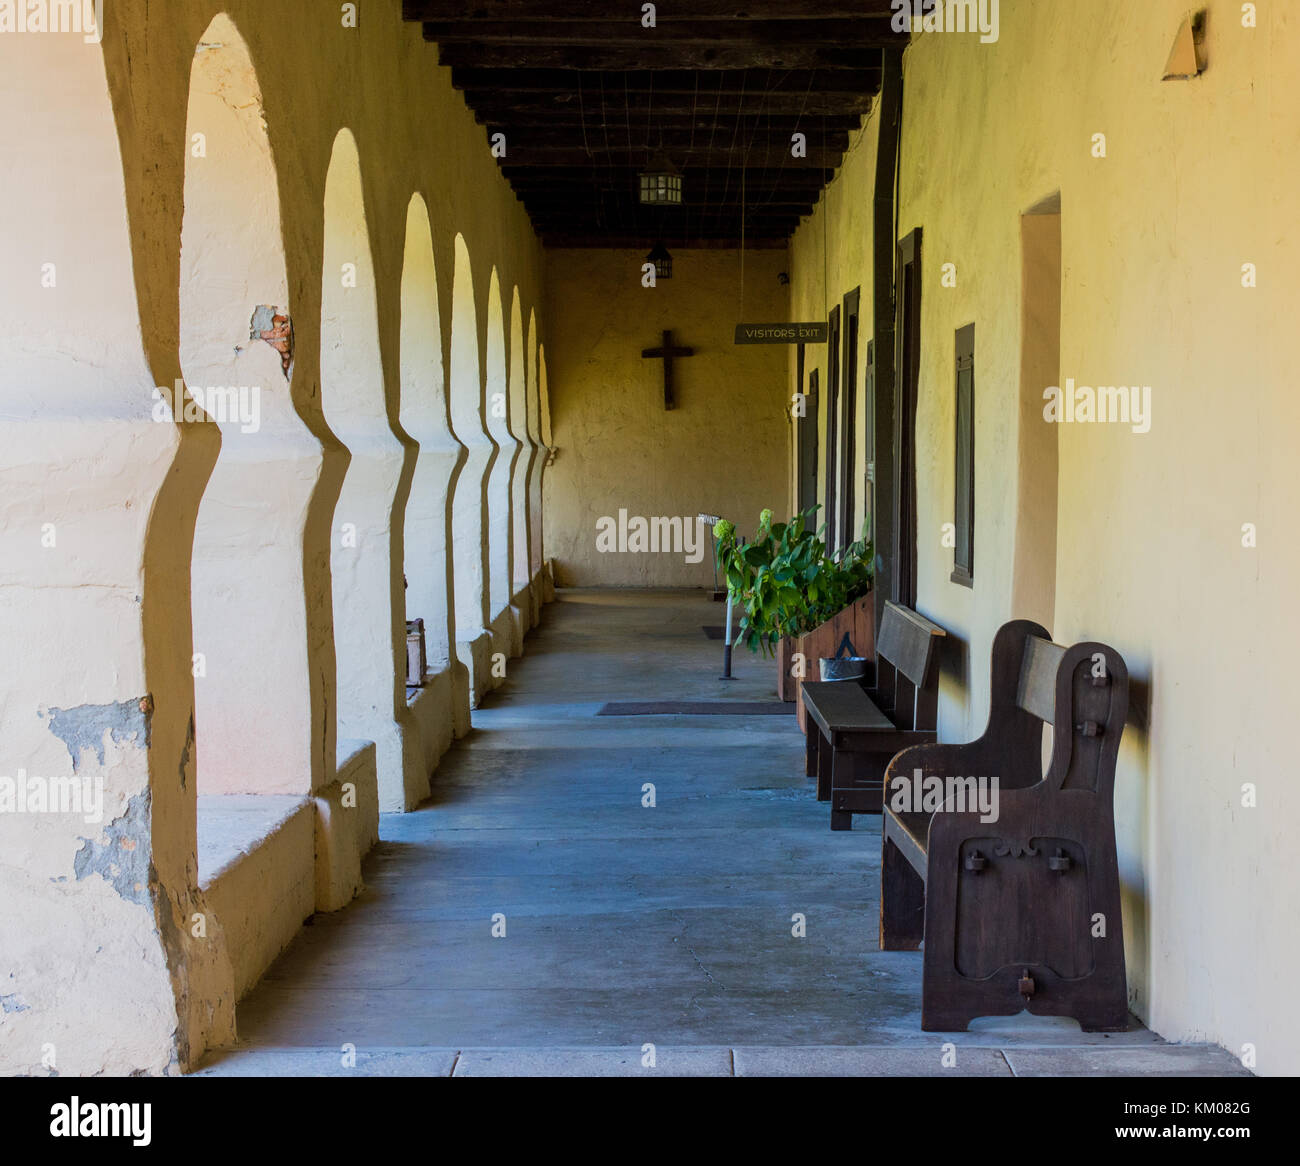 arched outdoor walkway and brown benches at a California mission with early morning sunlight - Stock Image